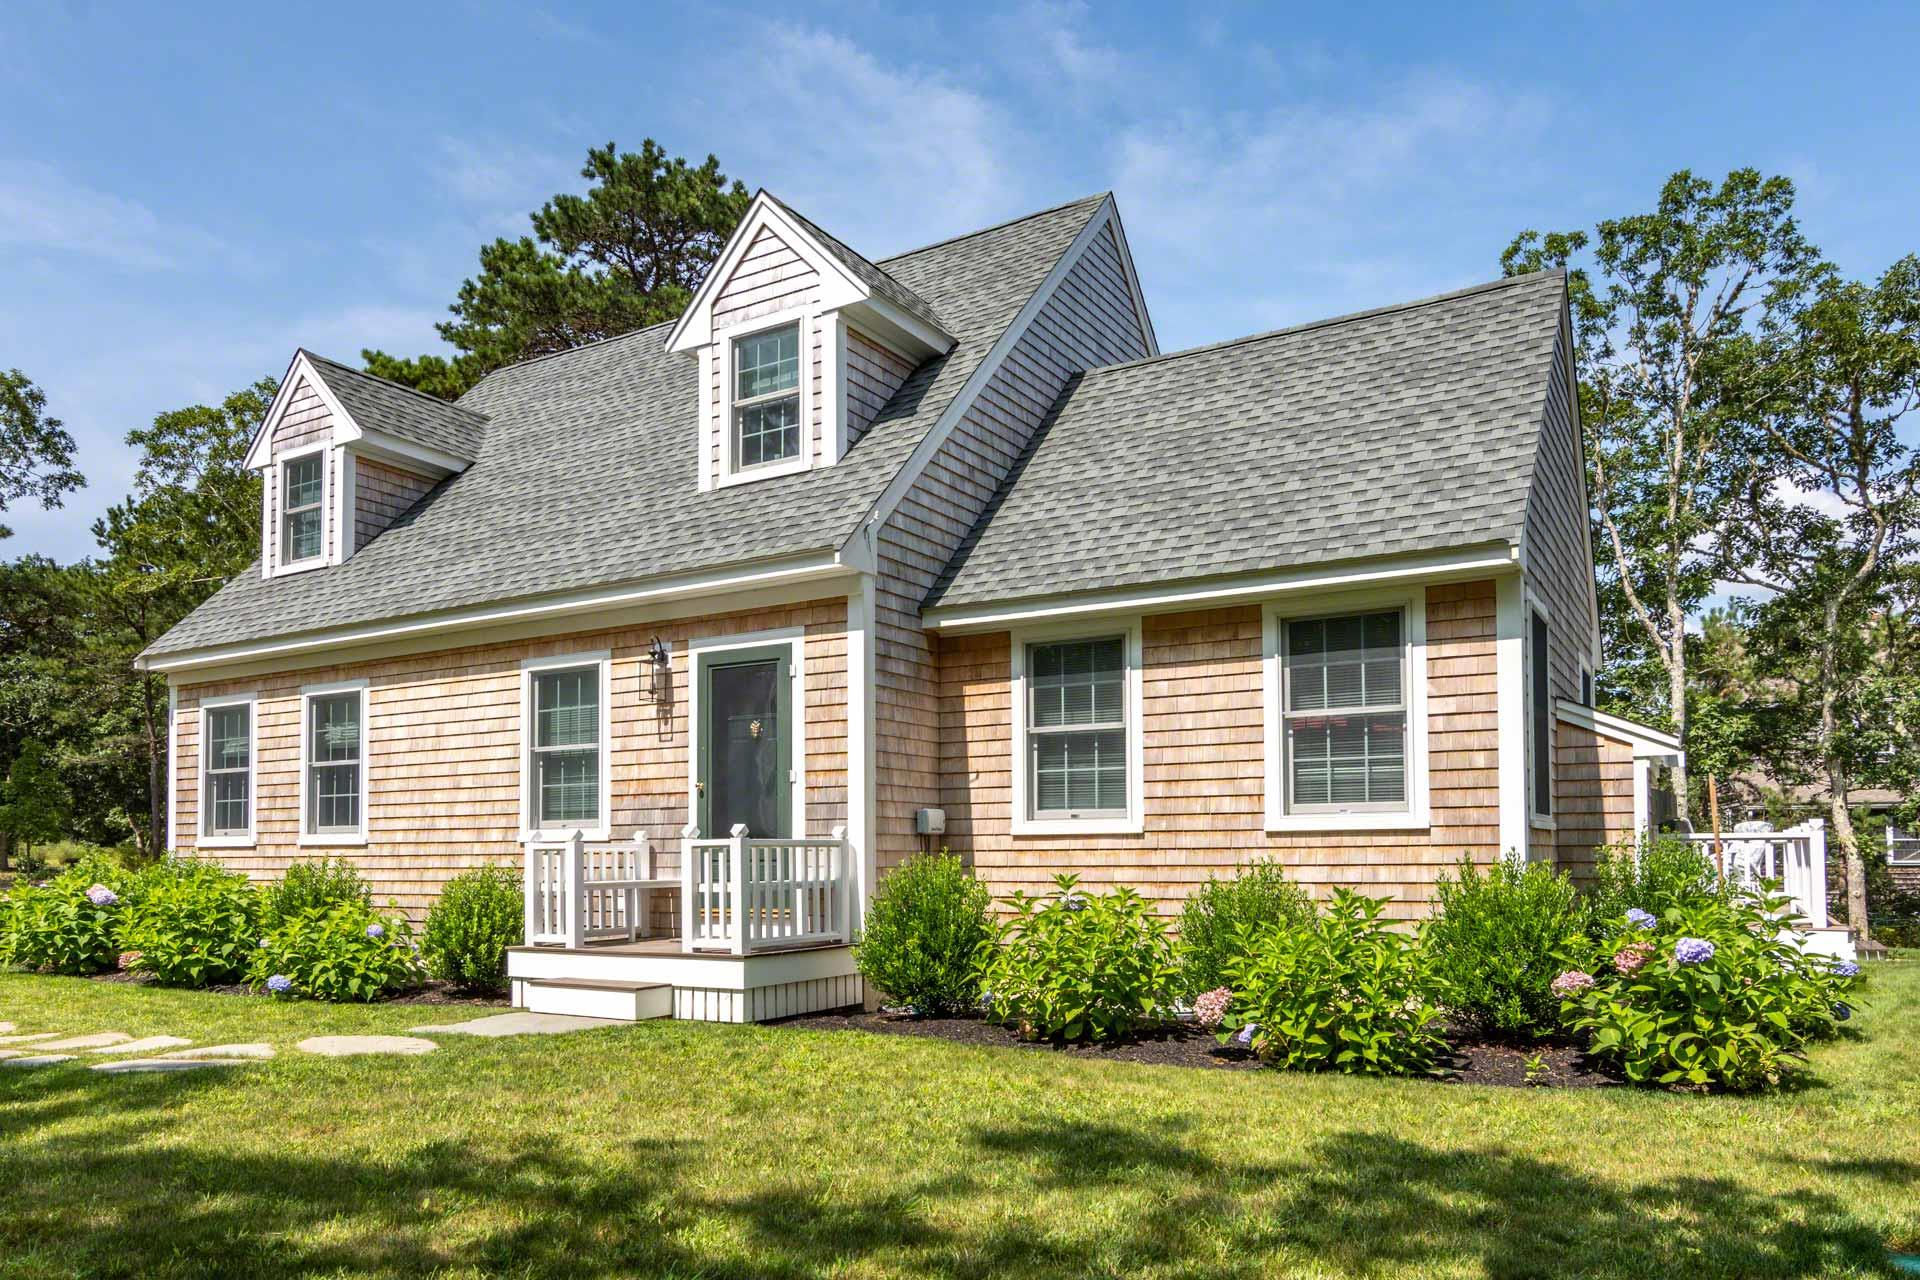 45 Edgewood Drive, Edgartown Unit: Newly Listed